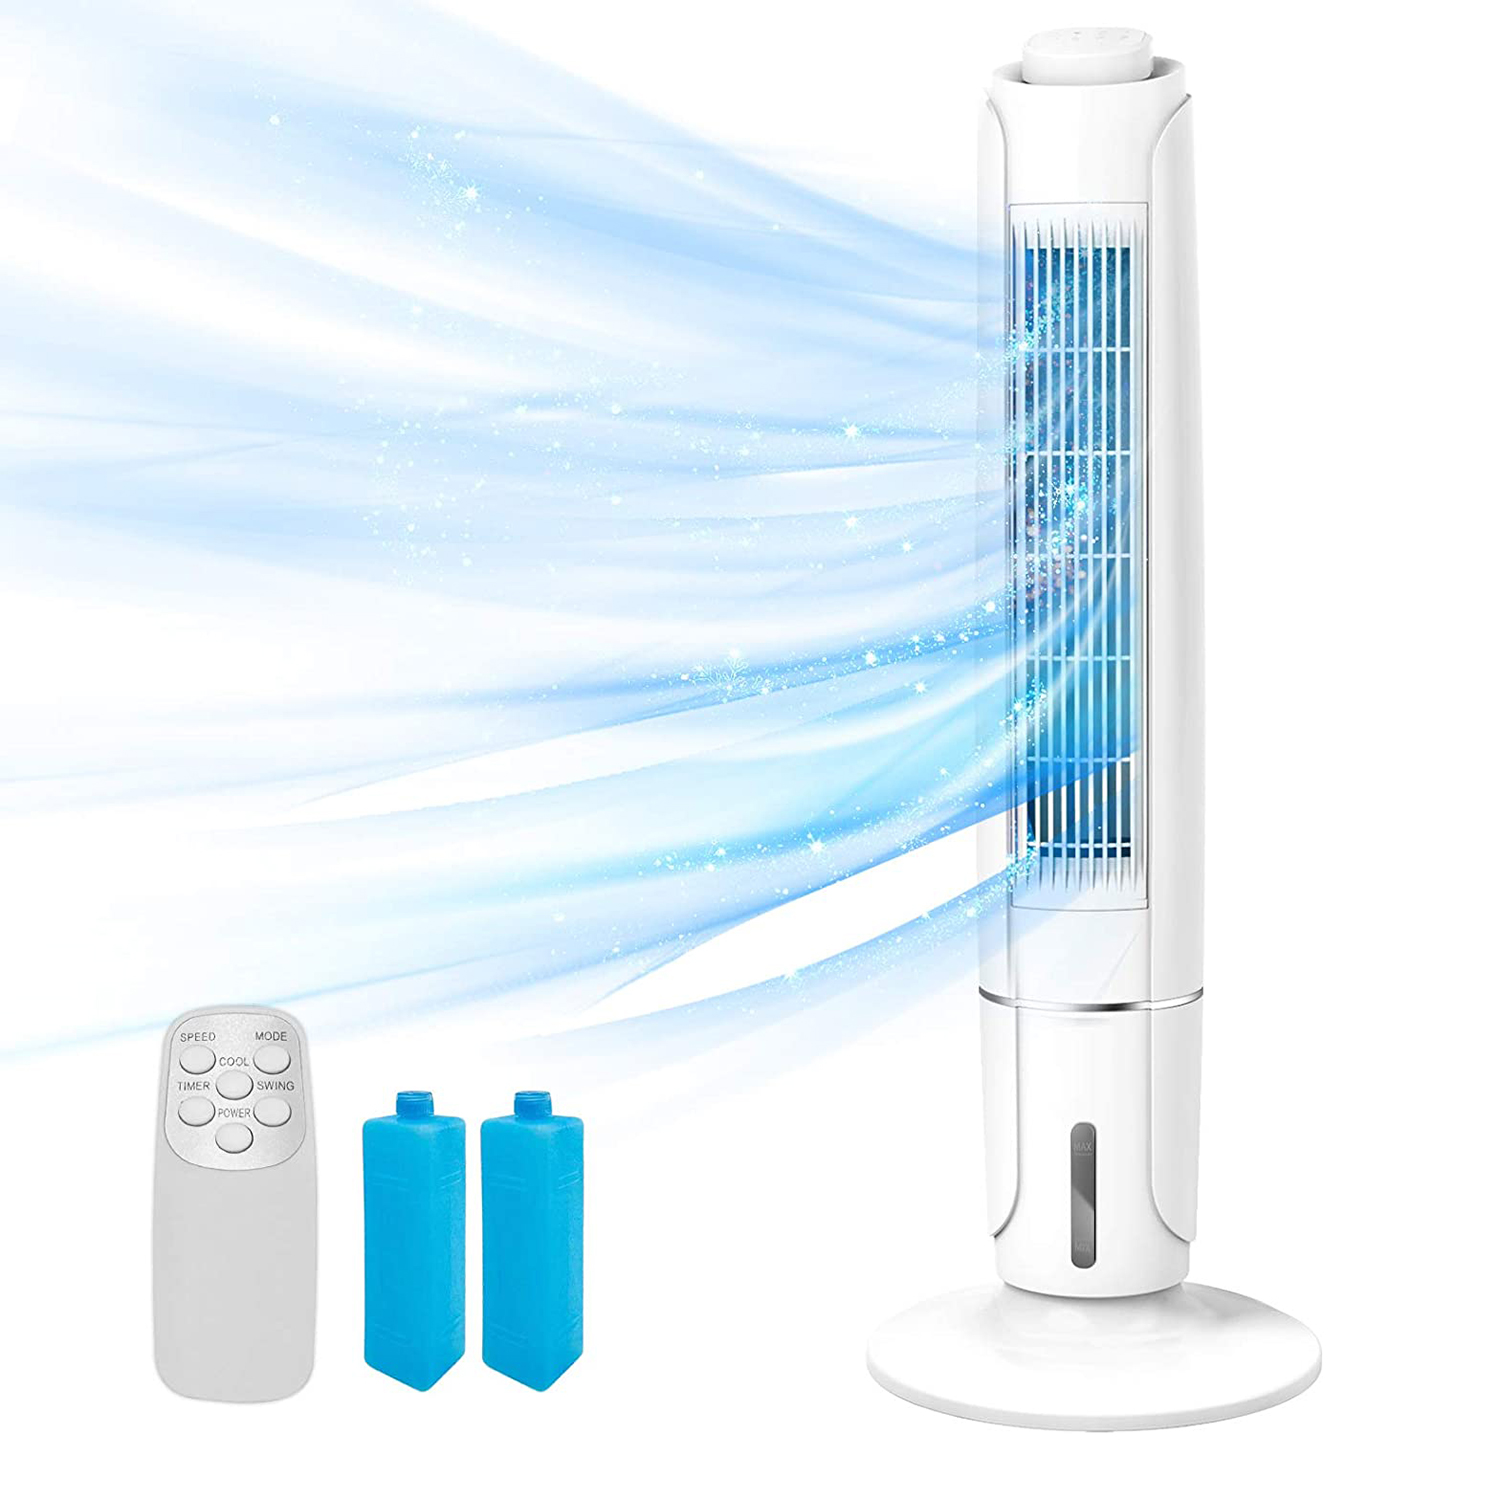 Cooling Products on Amazon 2021